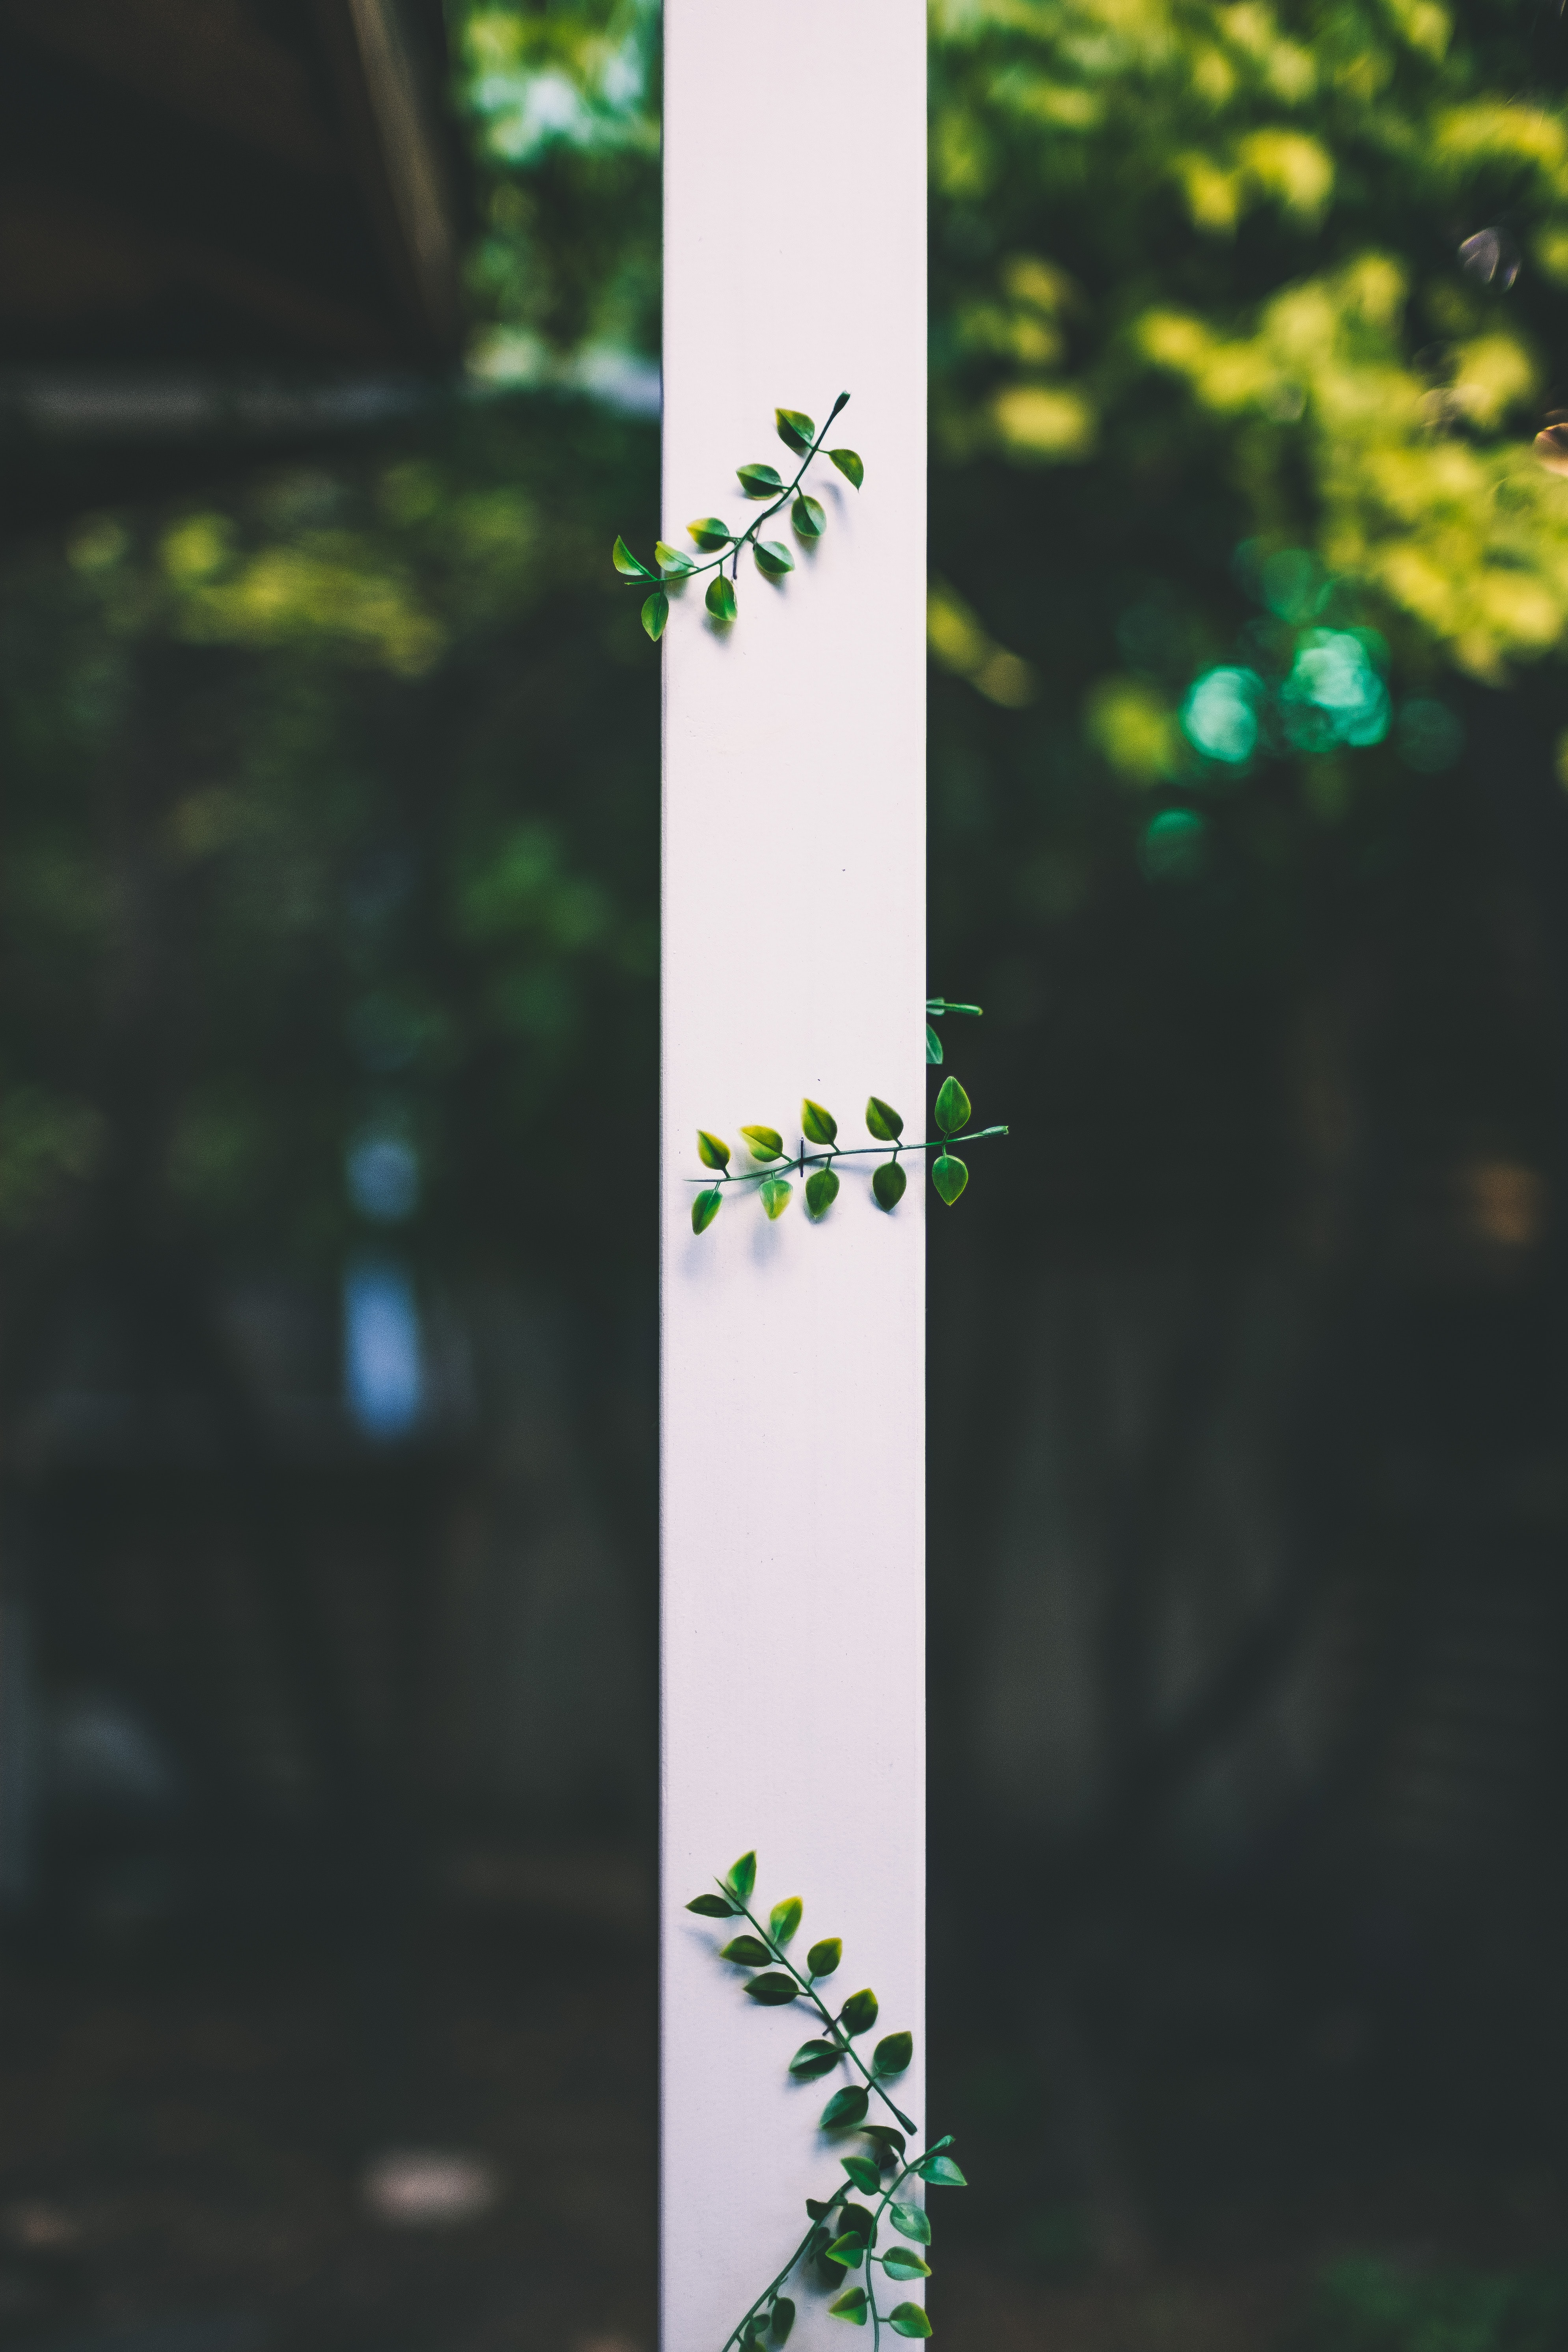 selective focus of white rod with green leaves